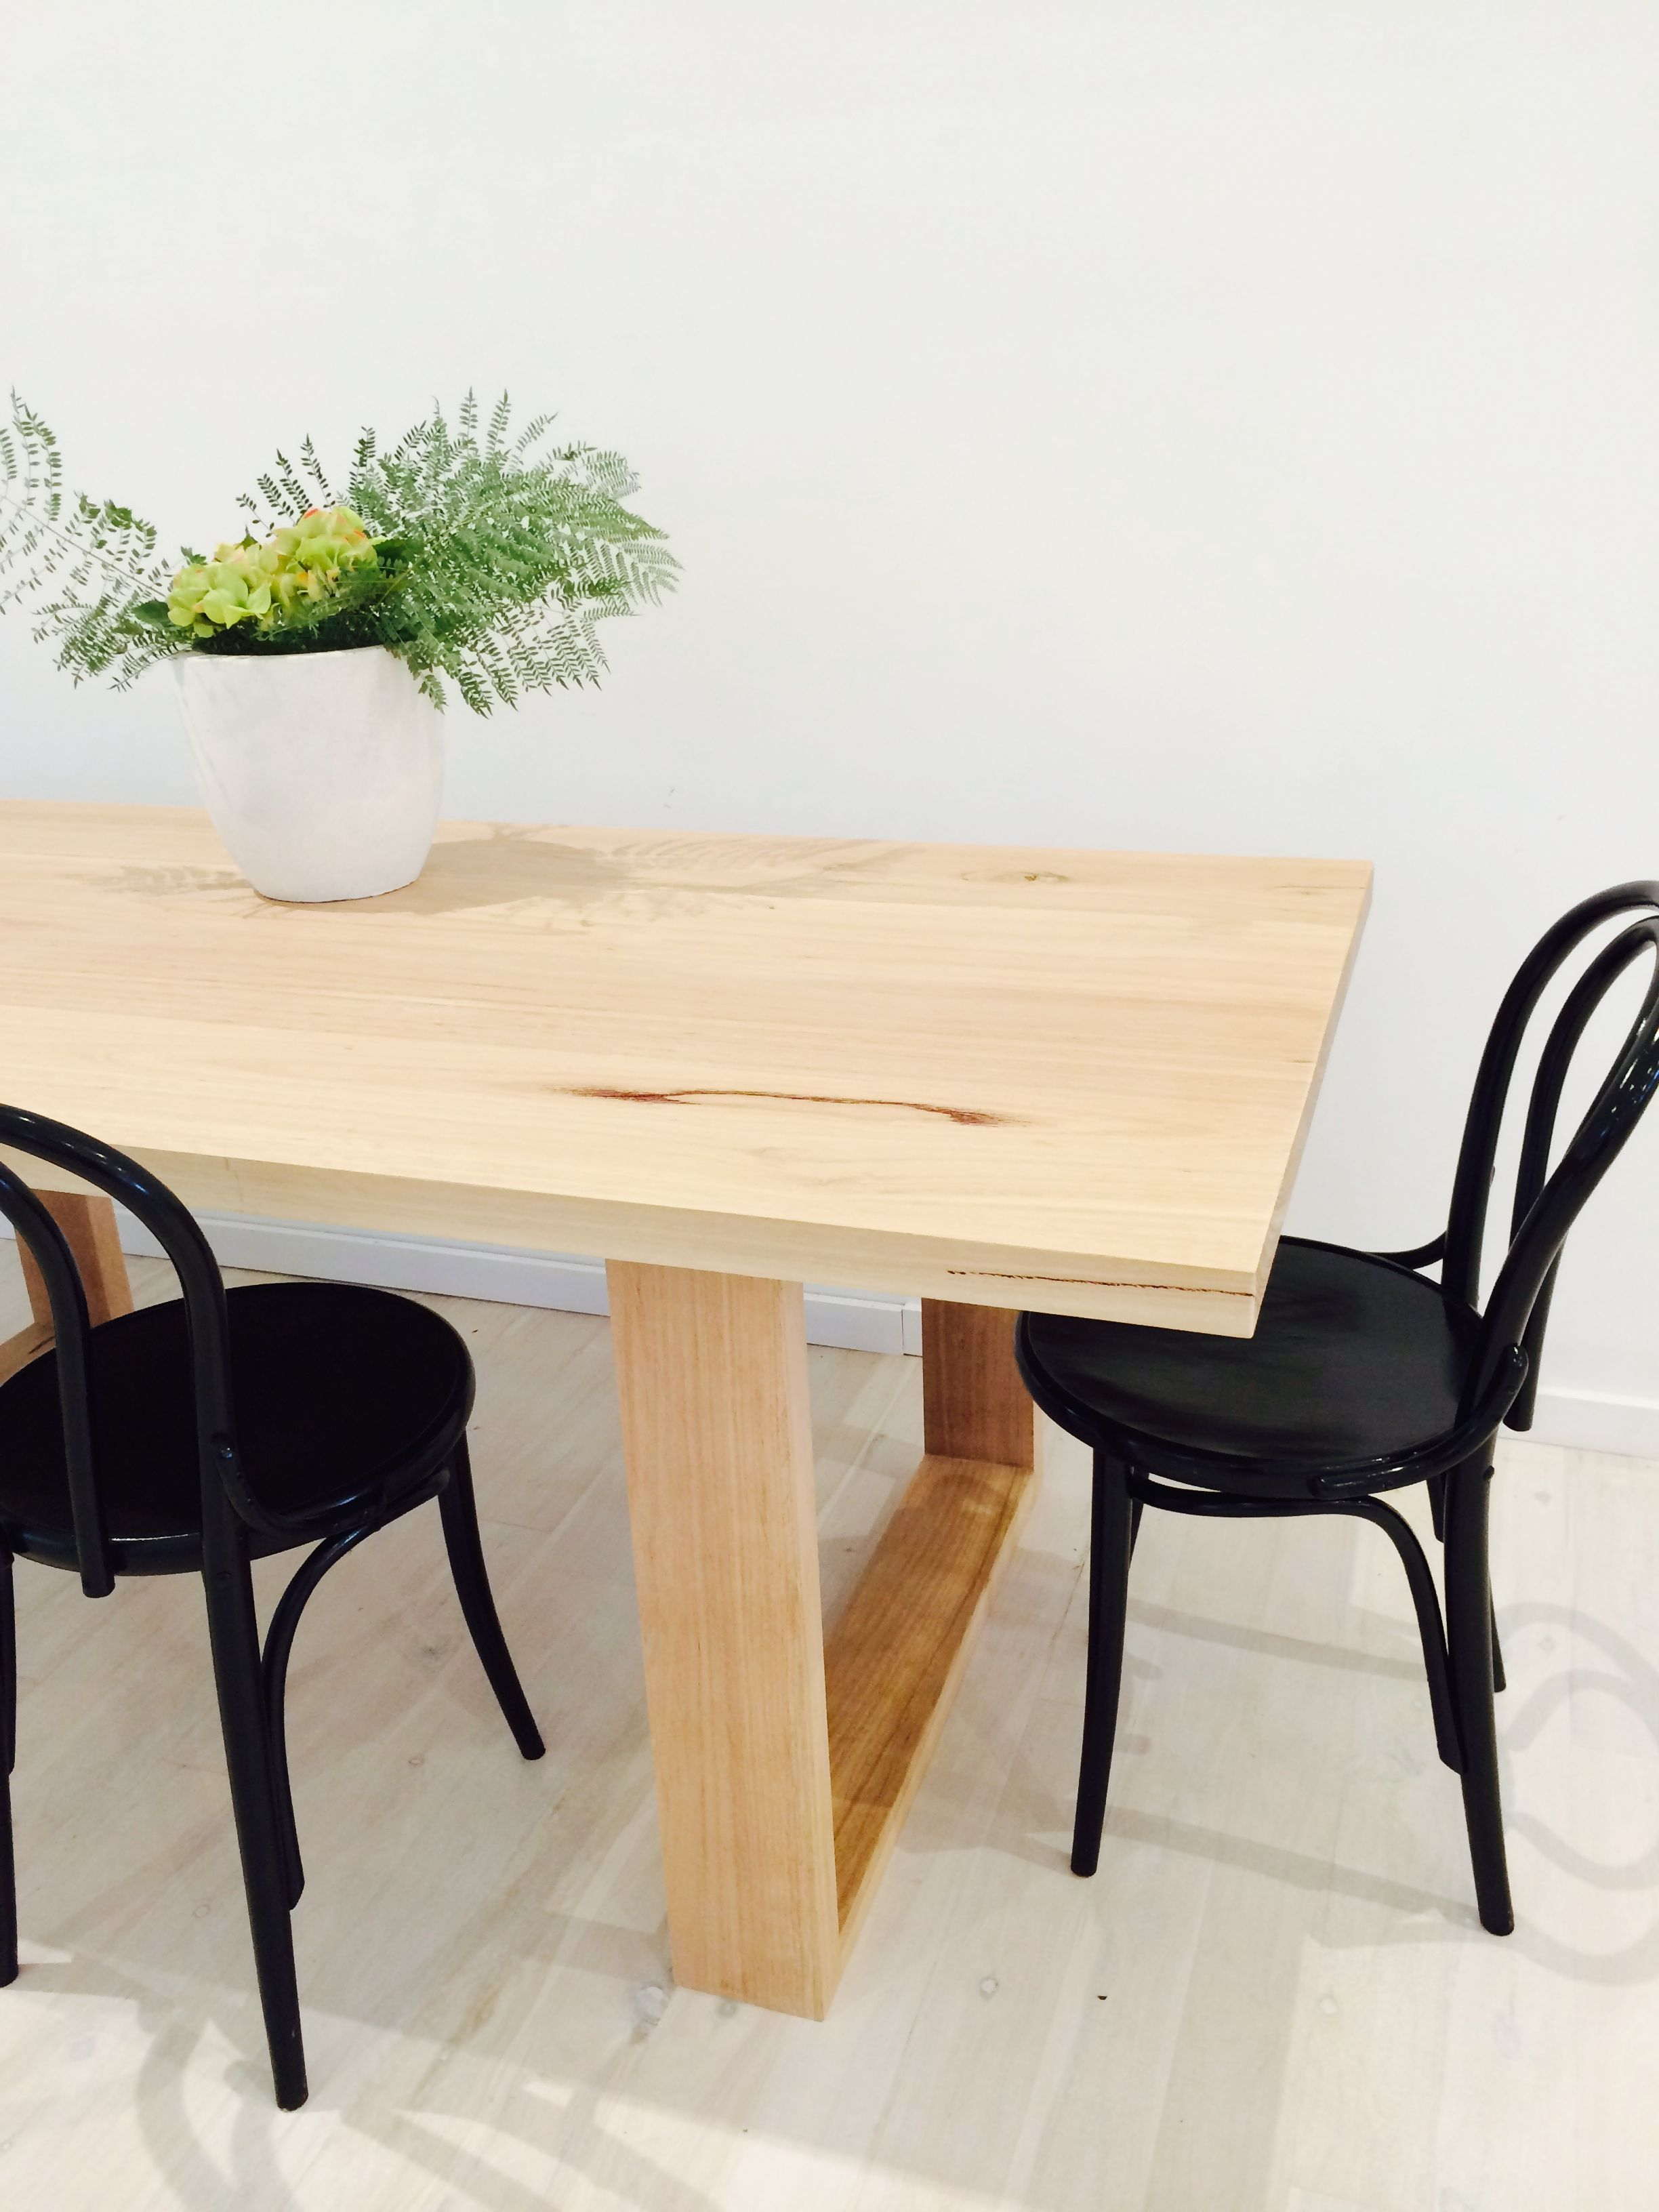 Bentwood chairs white - Black Bentwood Chairs A Stark Contrast Of White Wood Timber With Black Gloss Stunning